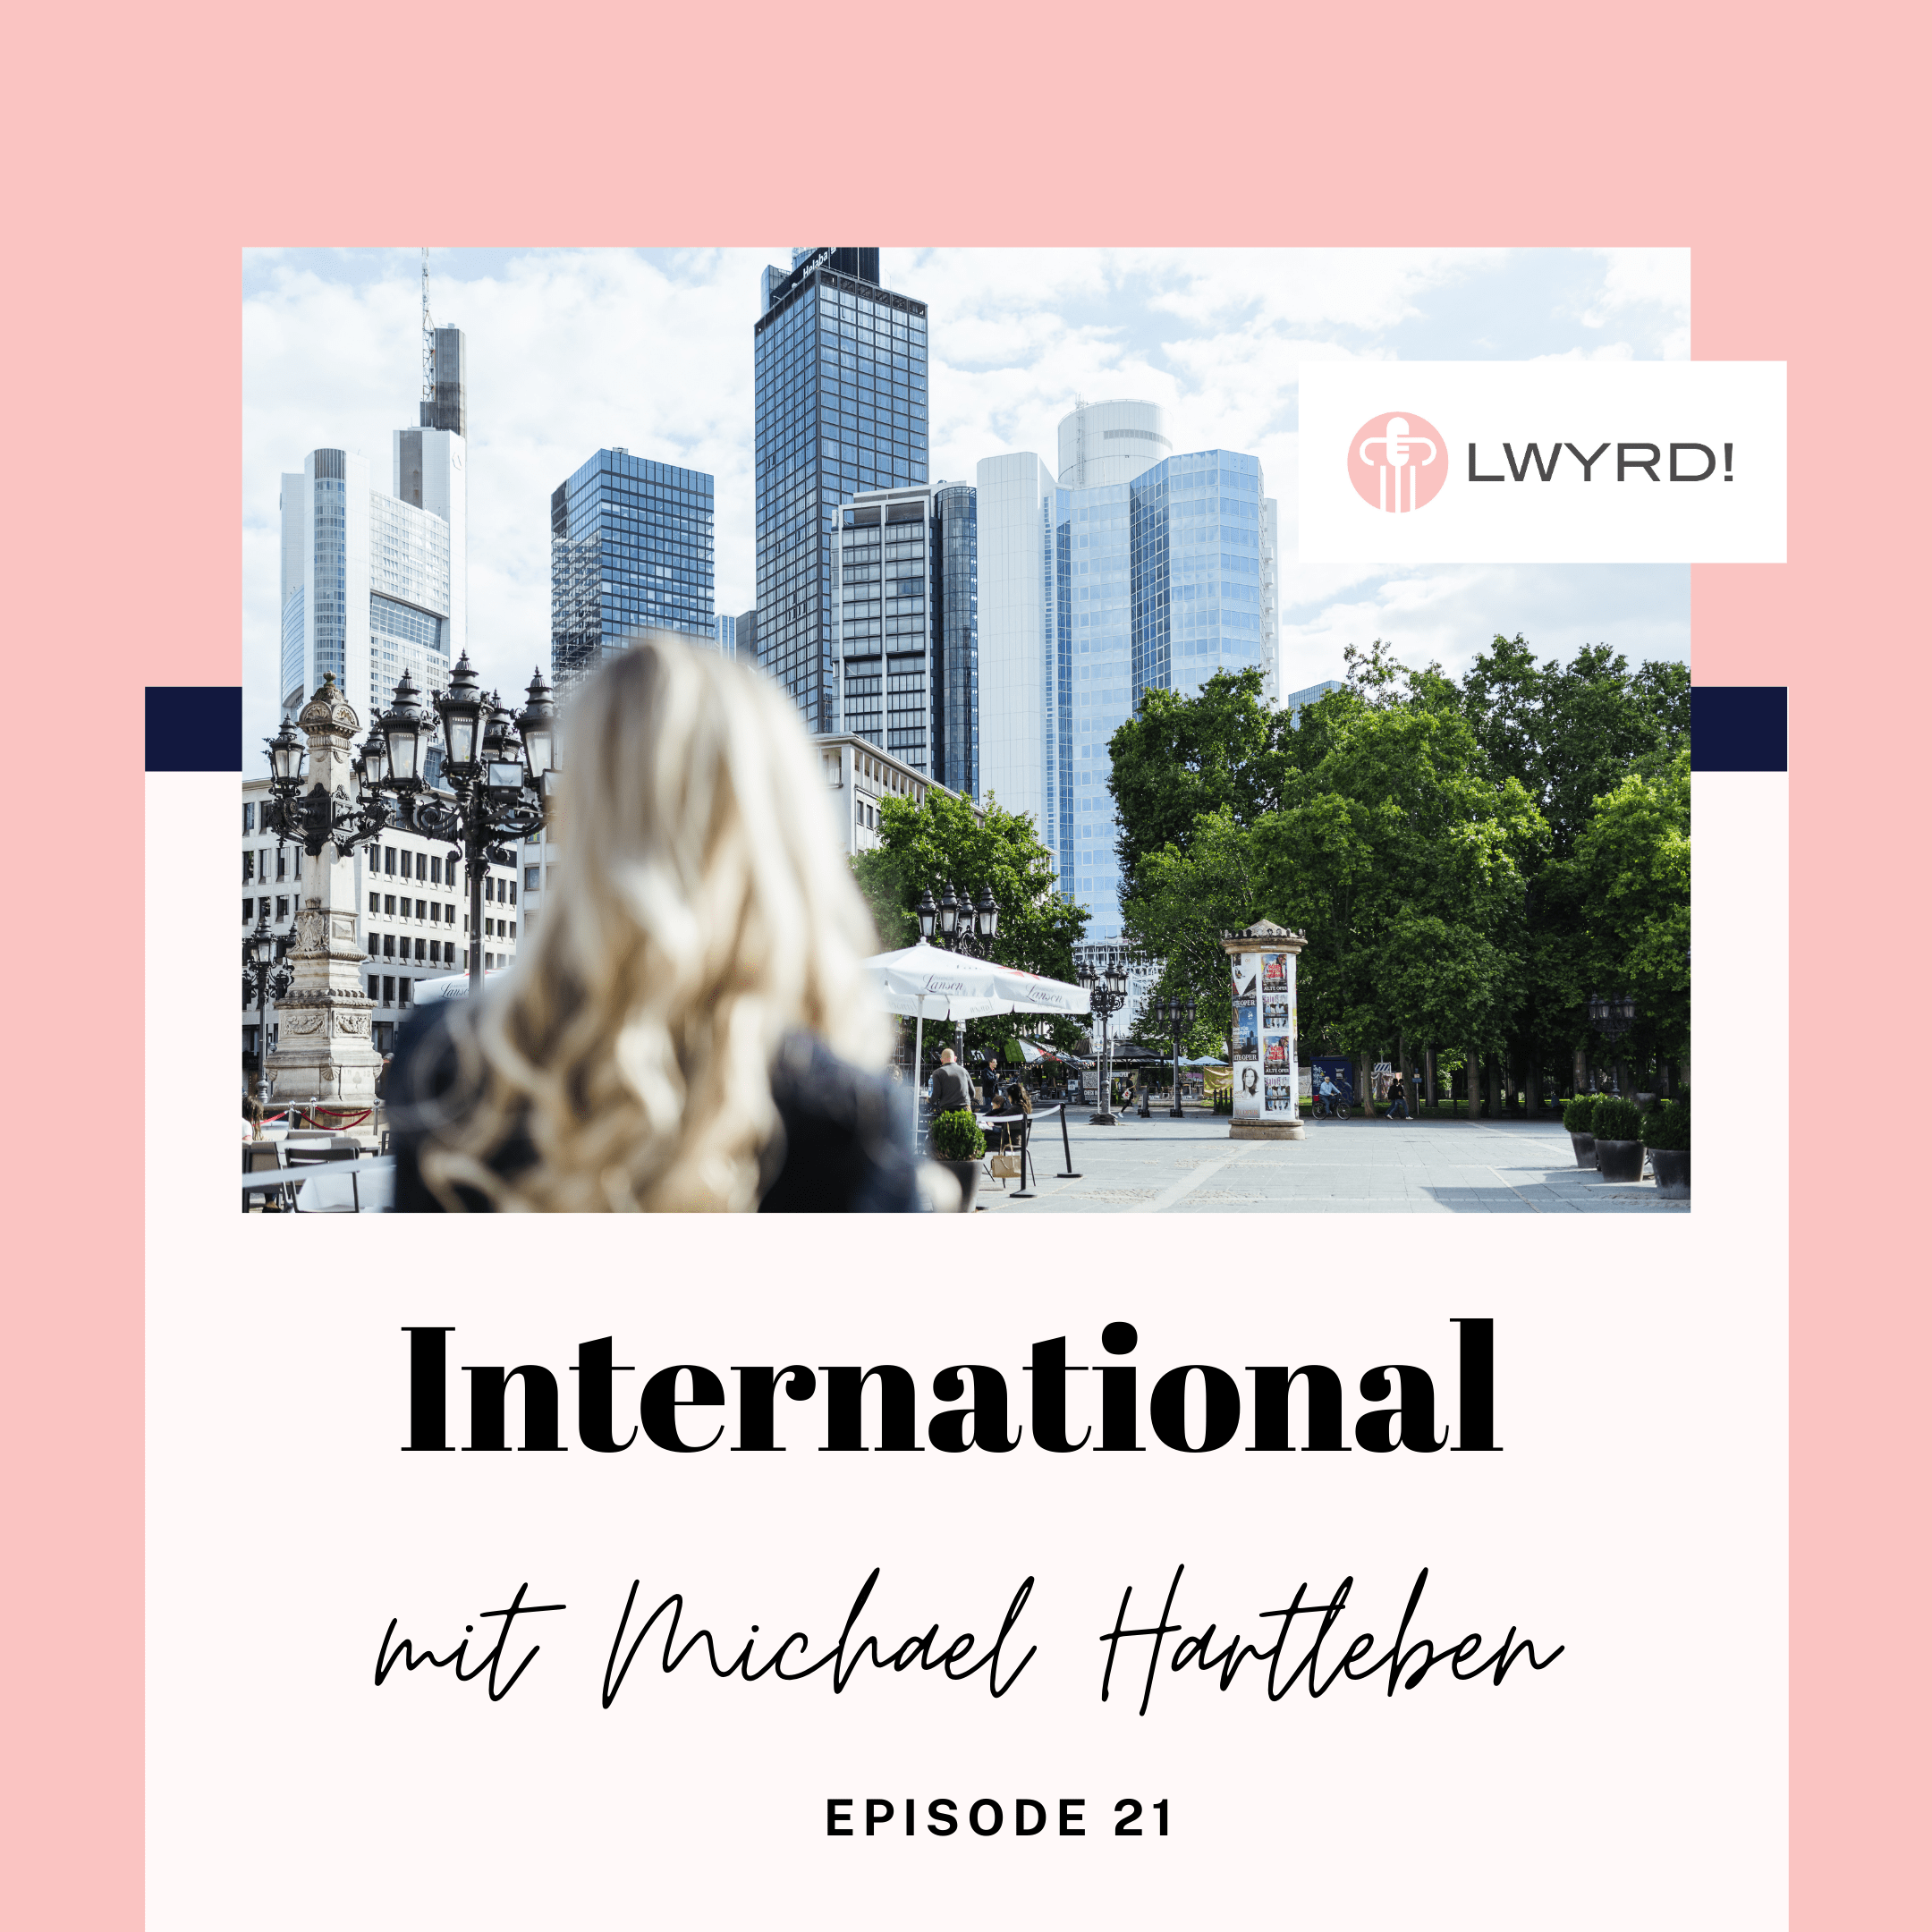 LWYRD! International_Episode 21 mit Michael Hartleben